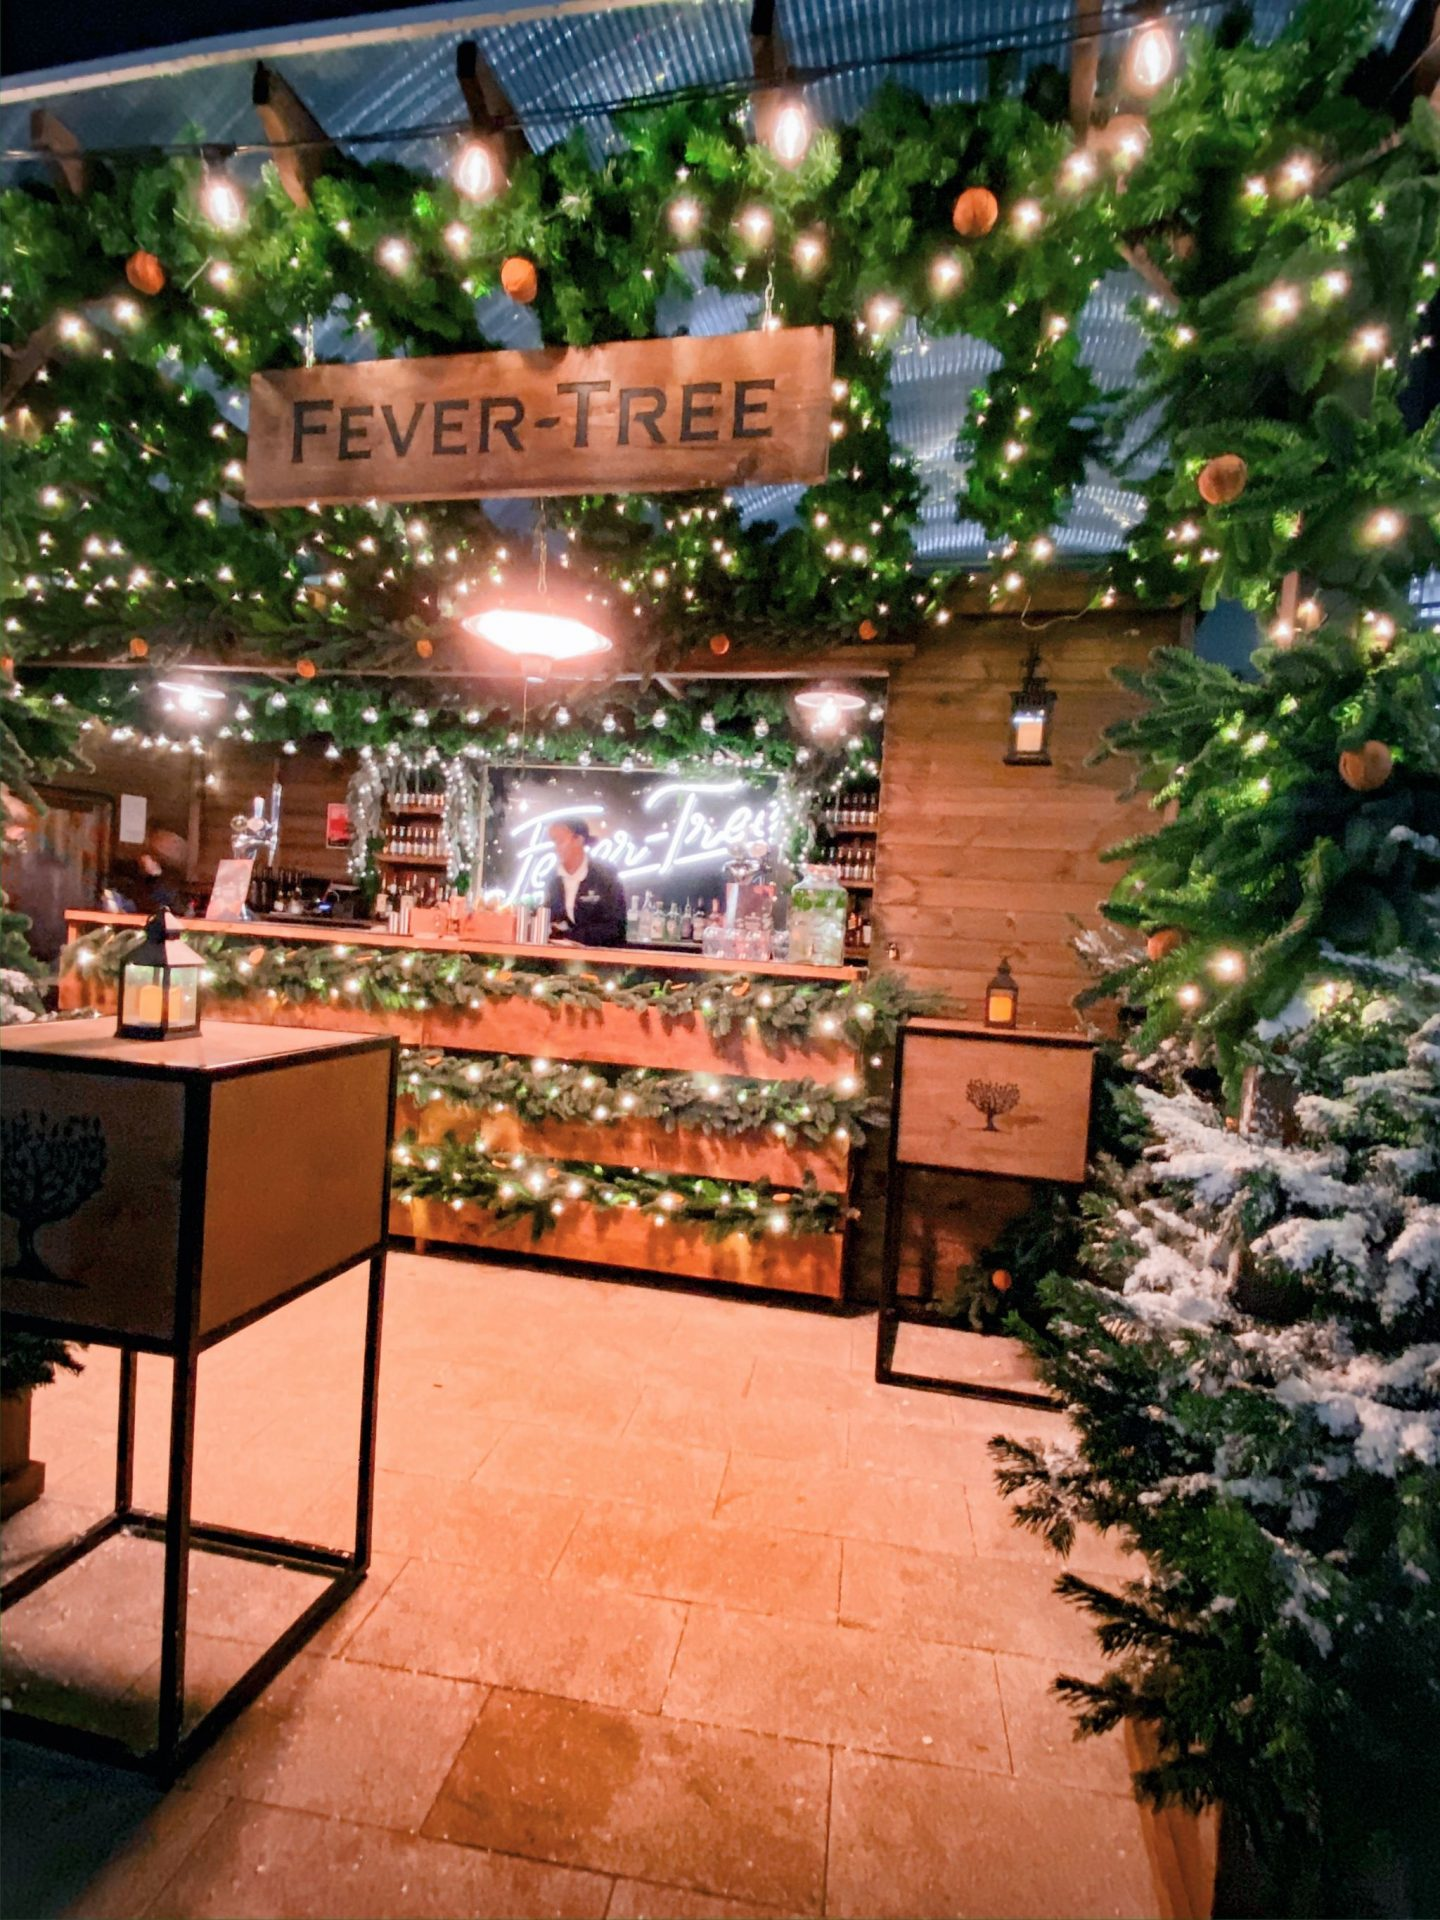 Fever-Tree Winter Lodge